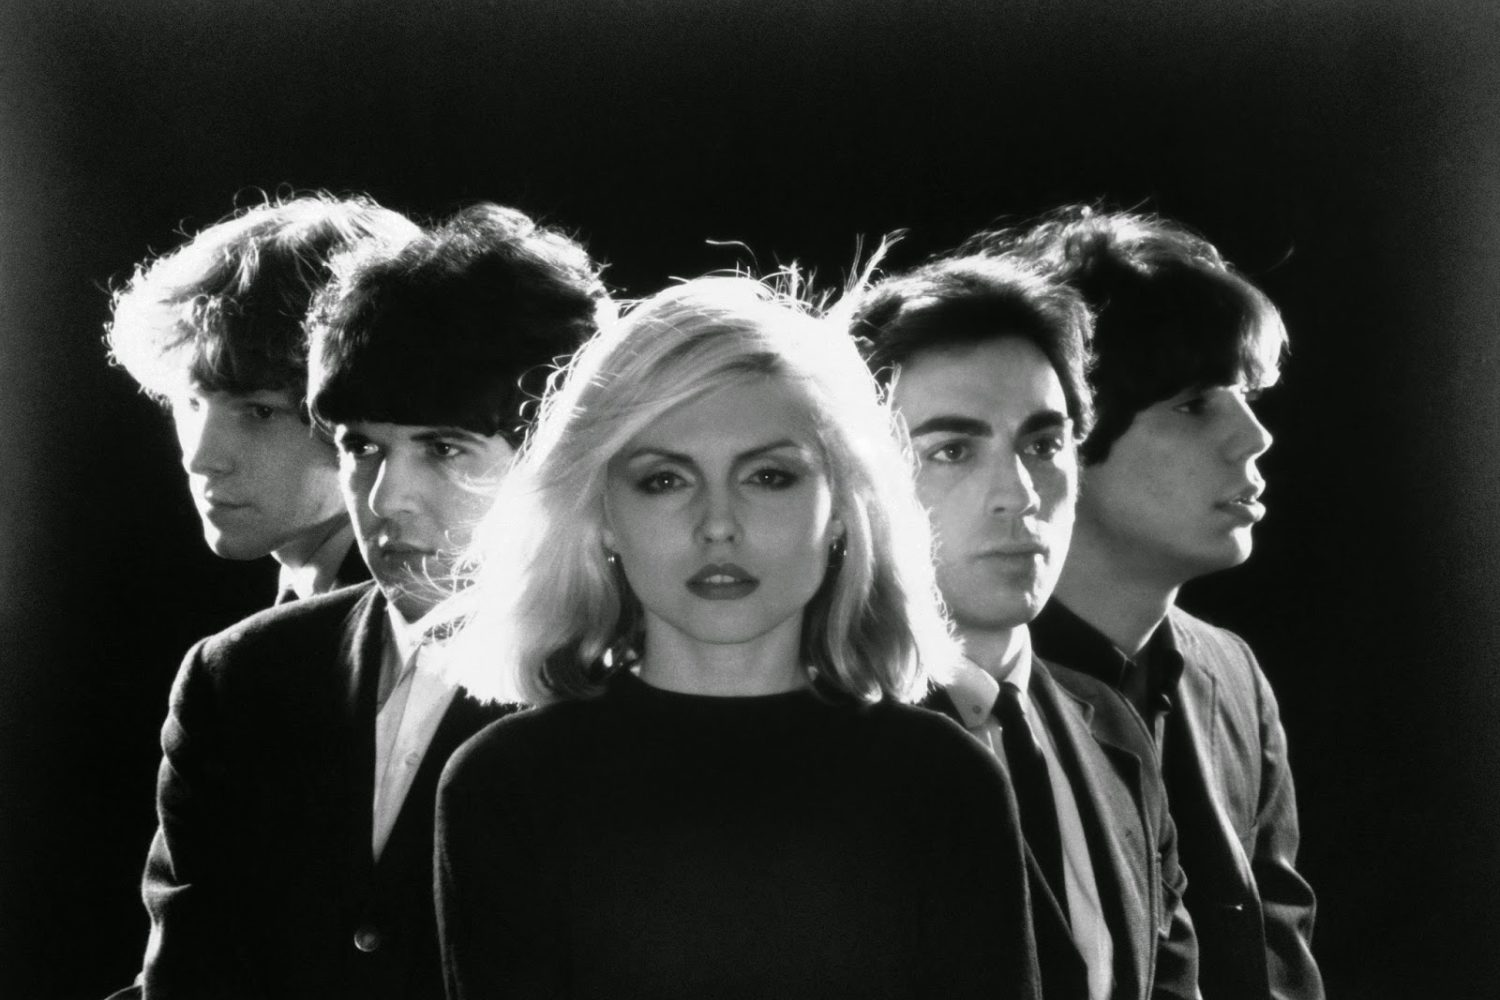 Blondie's new album sounds like a laugh